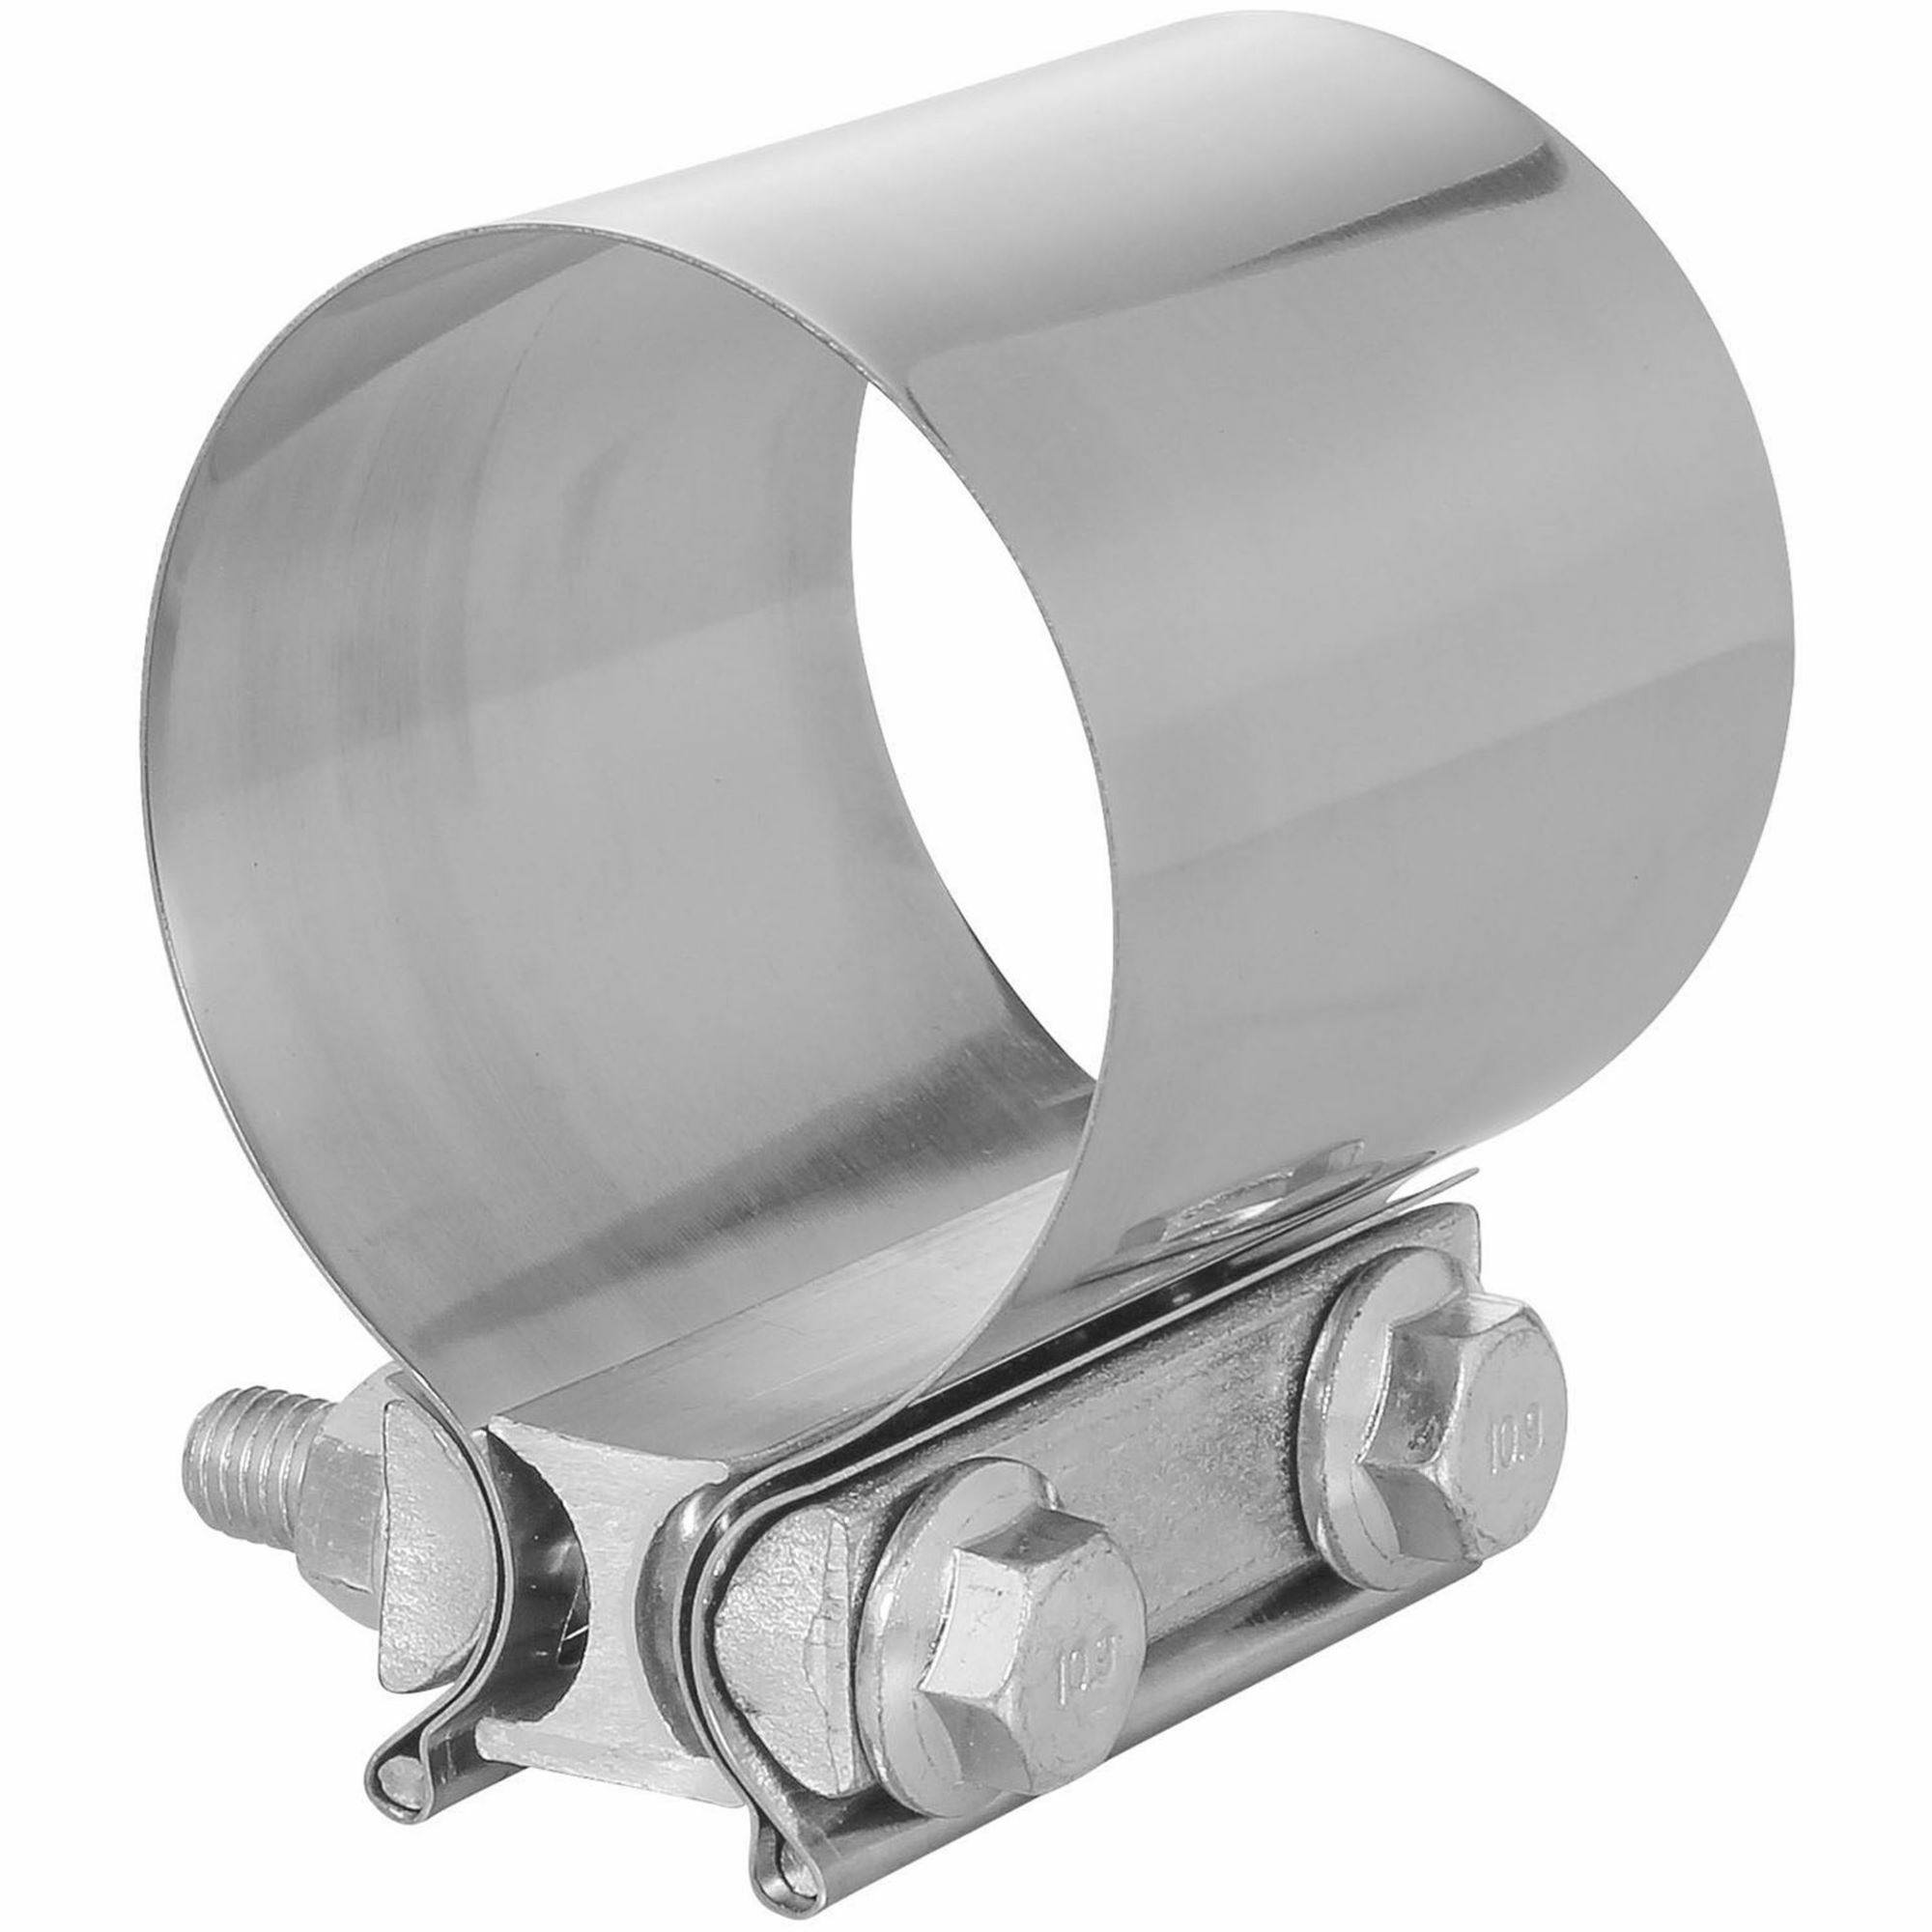 totalflow tf jb56 butt joint exhaust muffler clamp band 2 inch